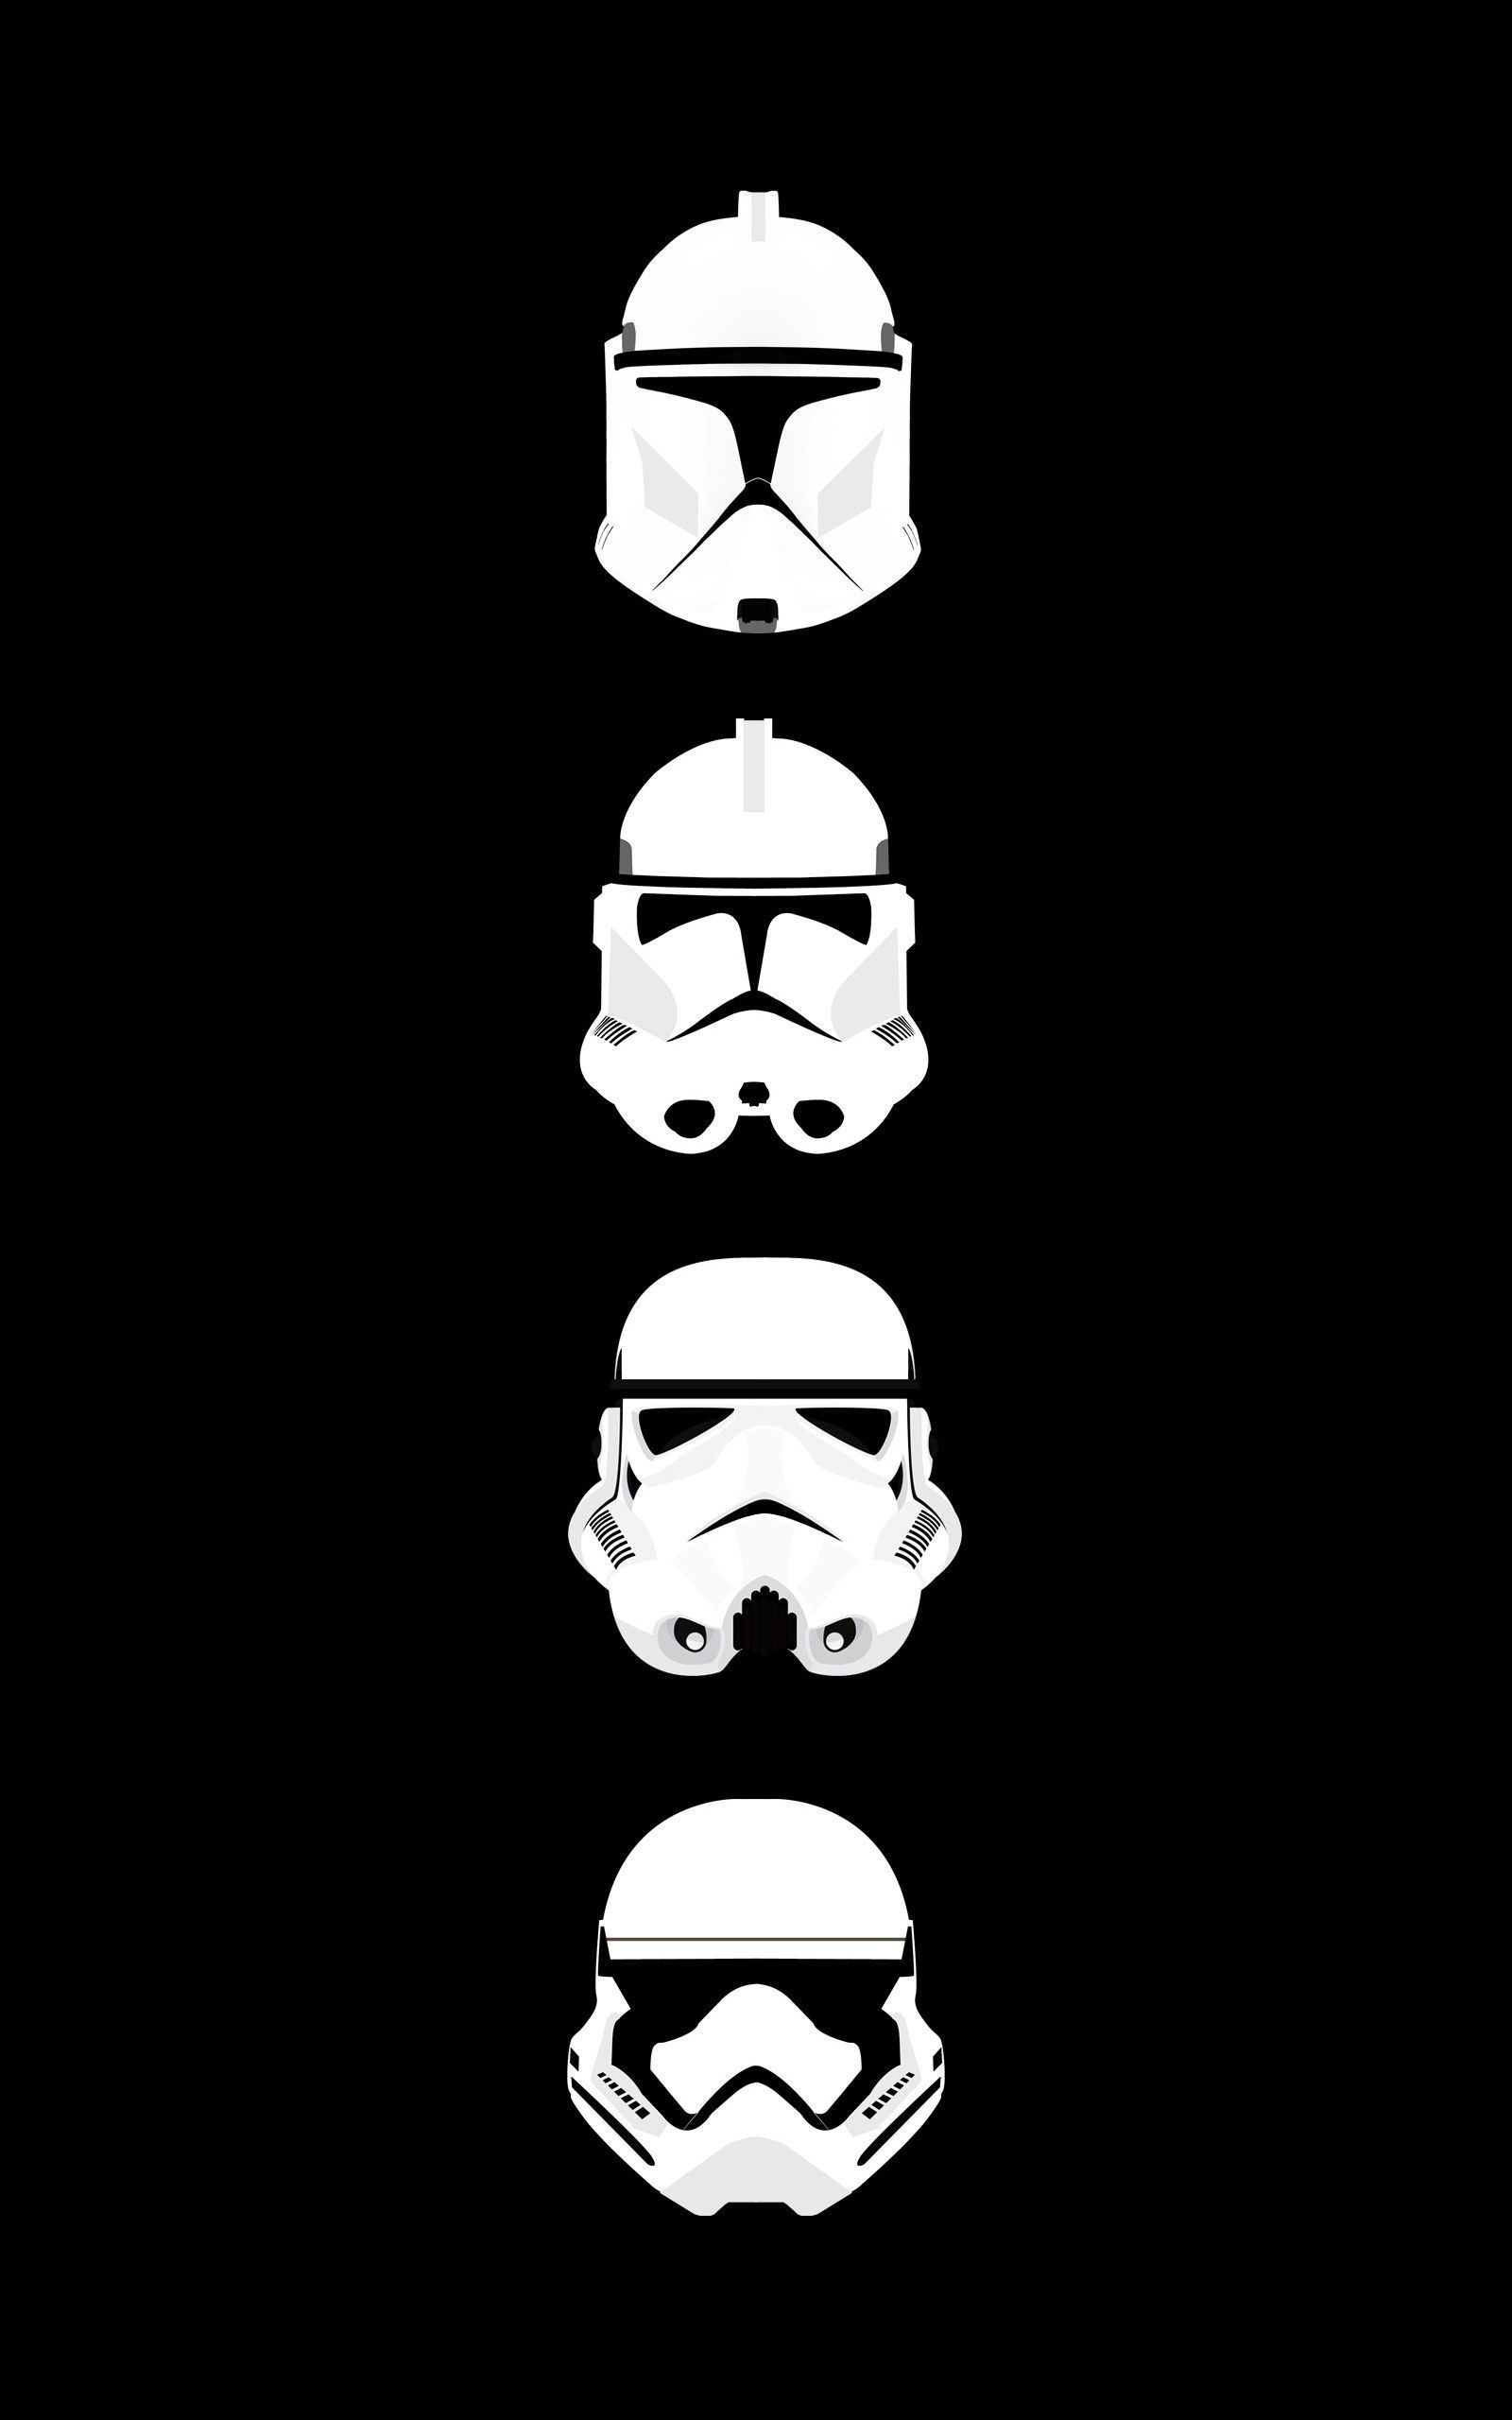 Star Wars Iphone Wallpapers Top Free Star Wars Iphone